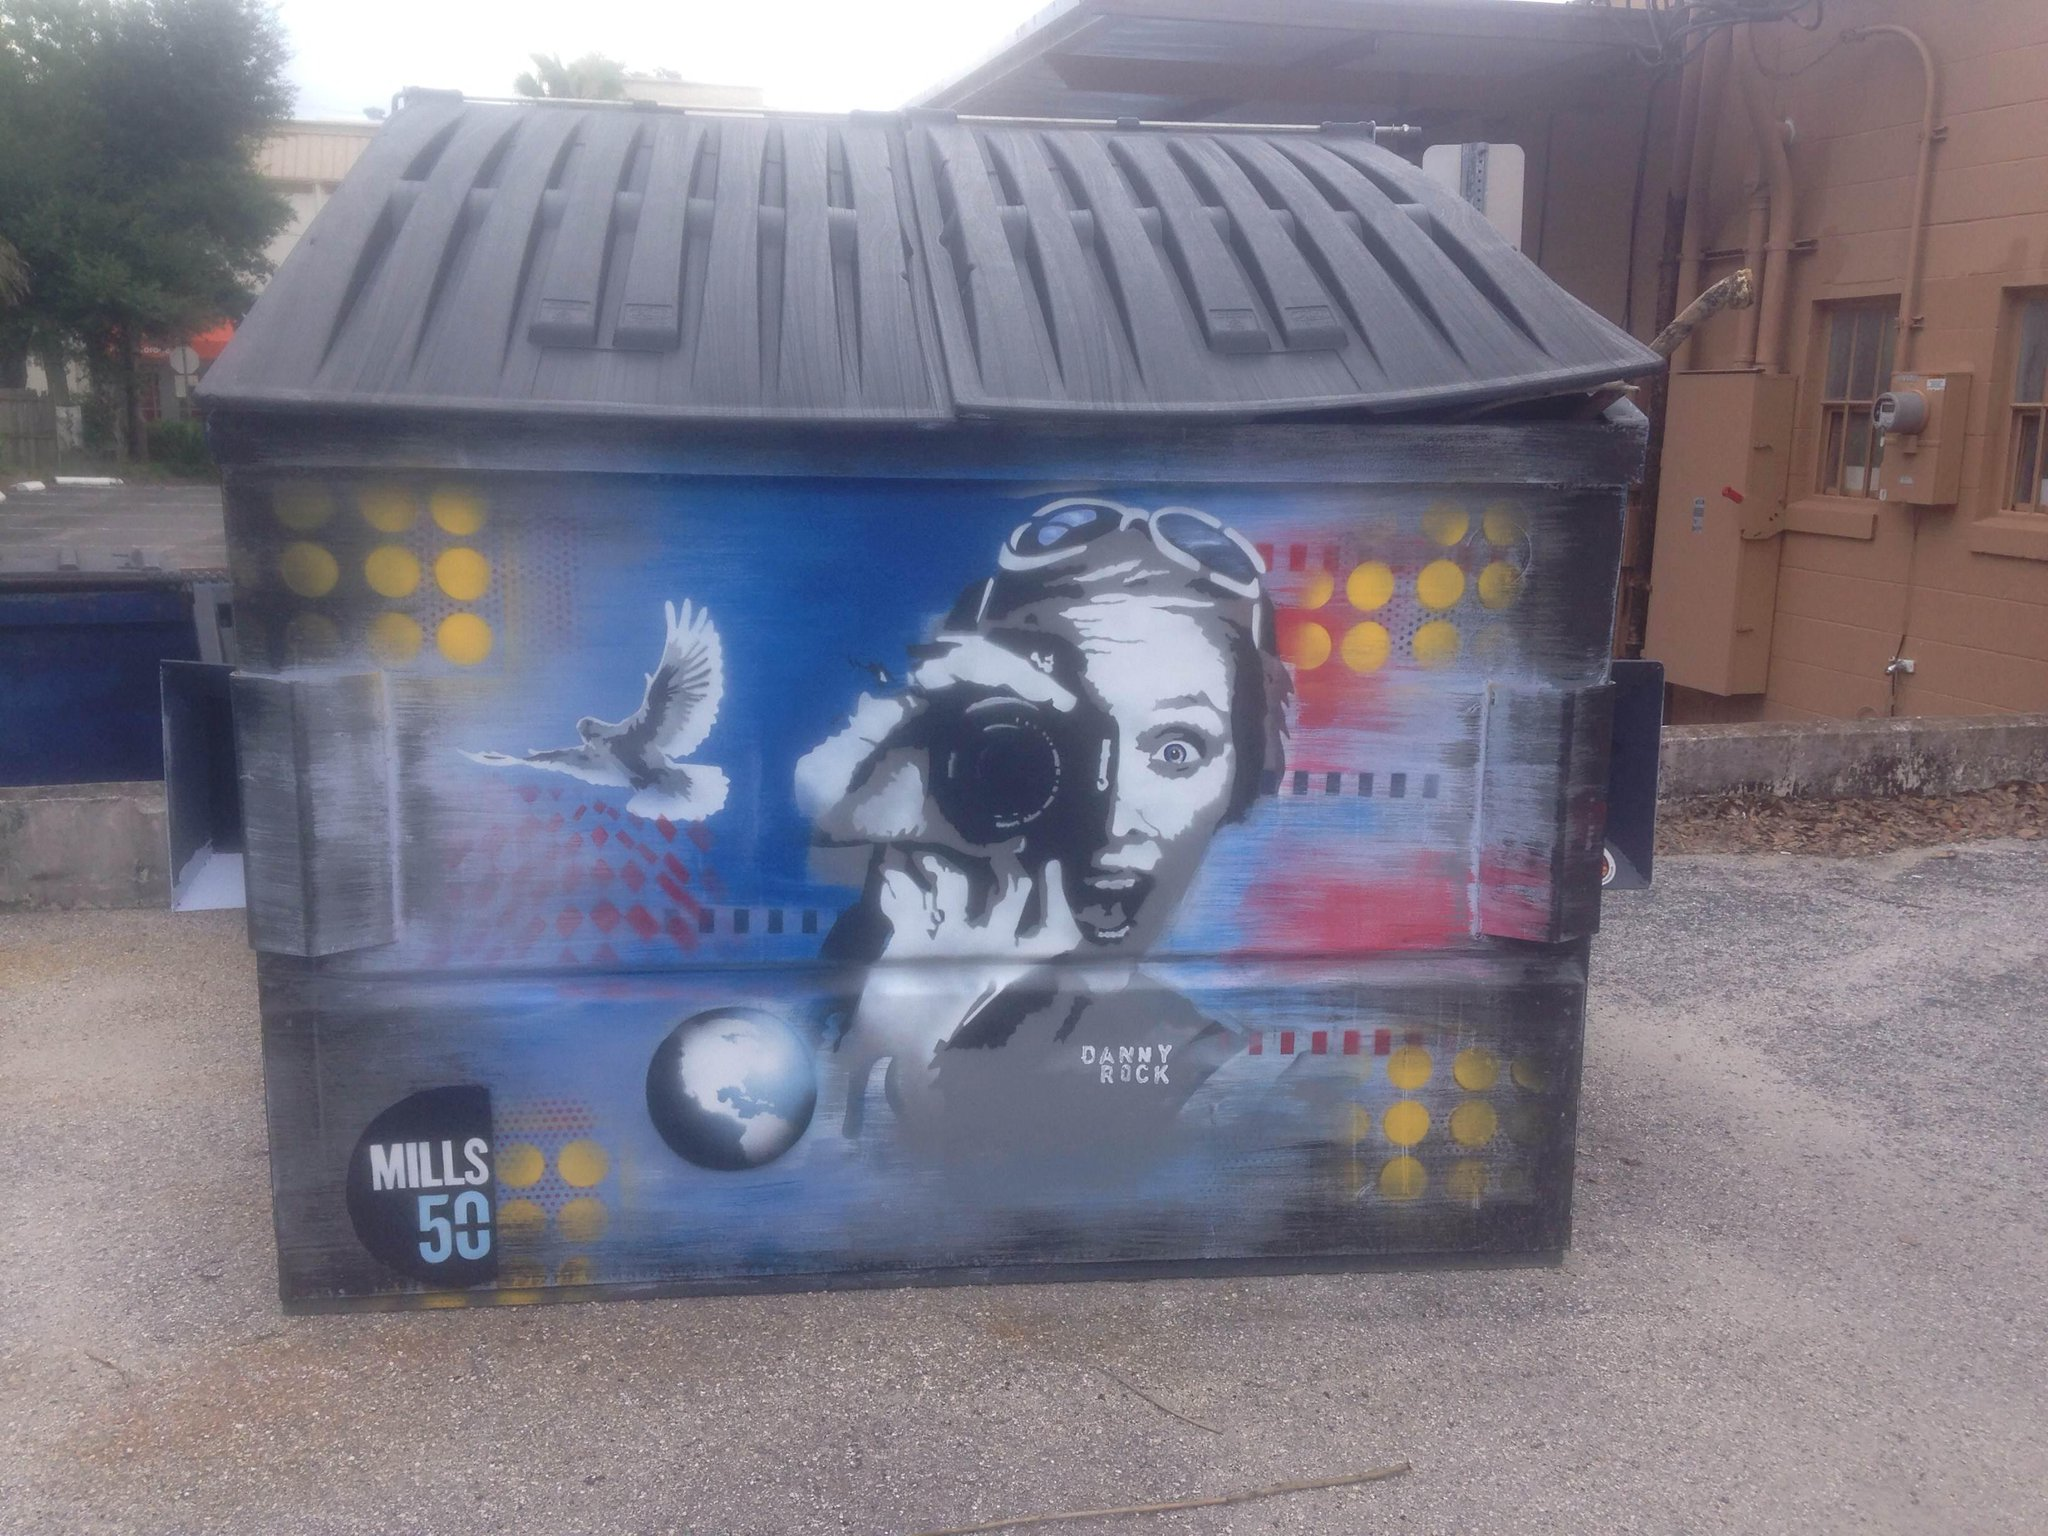 Twitter / GulkinGazette: More of @Mills50 #dumpsterart ...